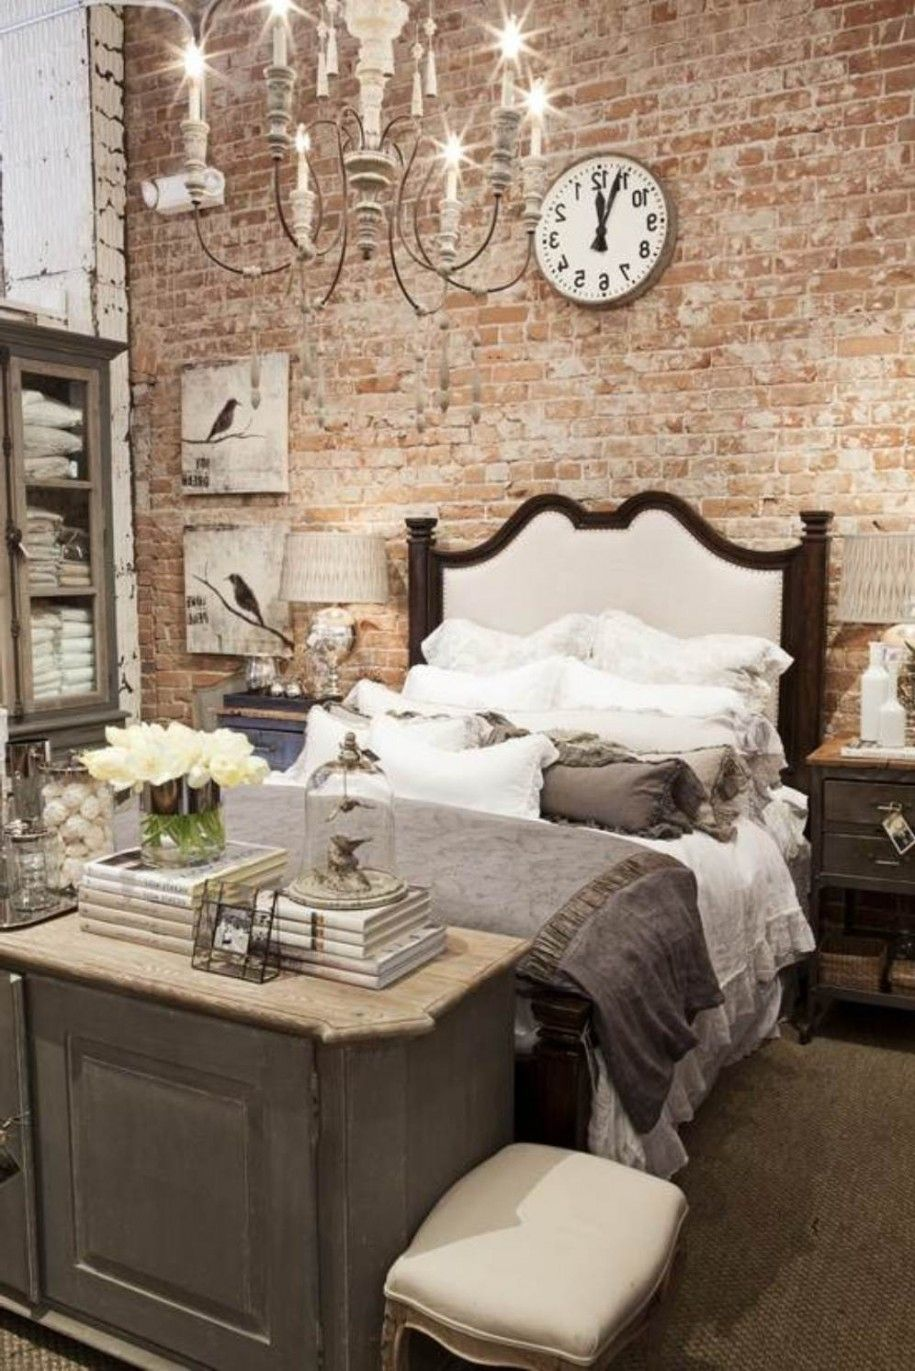 Romantic bedroom decorating ideas bedroom rustic design Romantic bedroom interior ideas